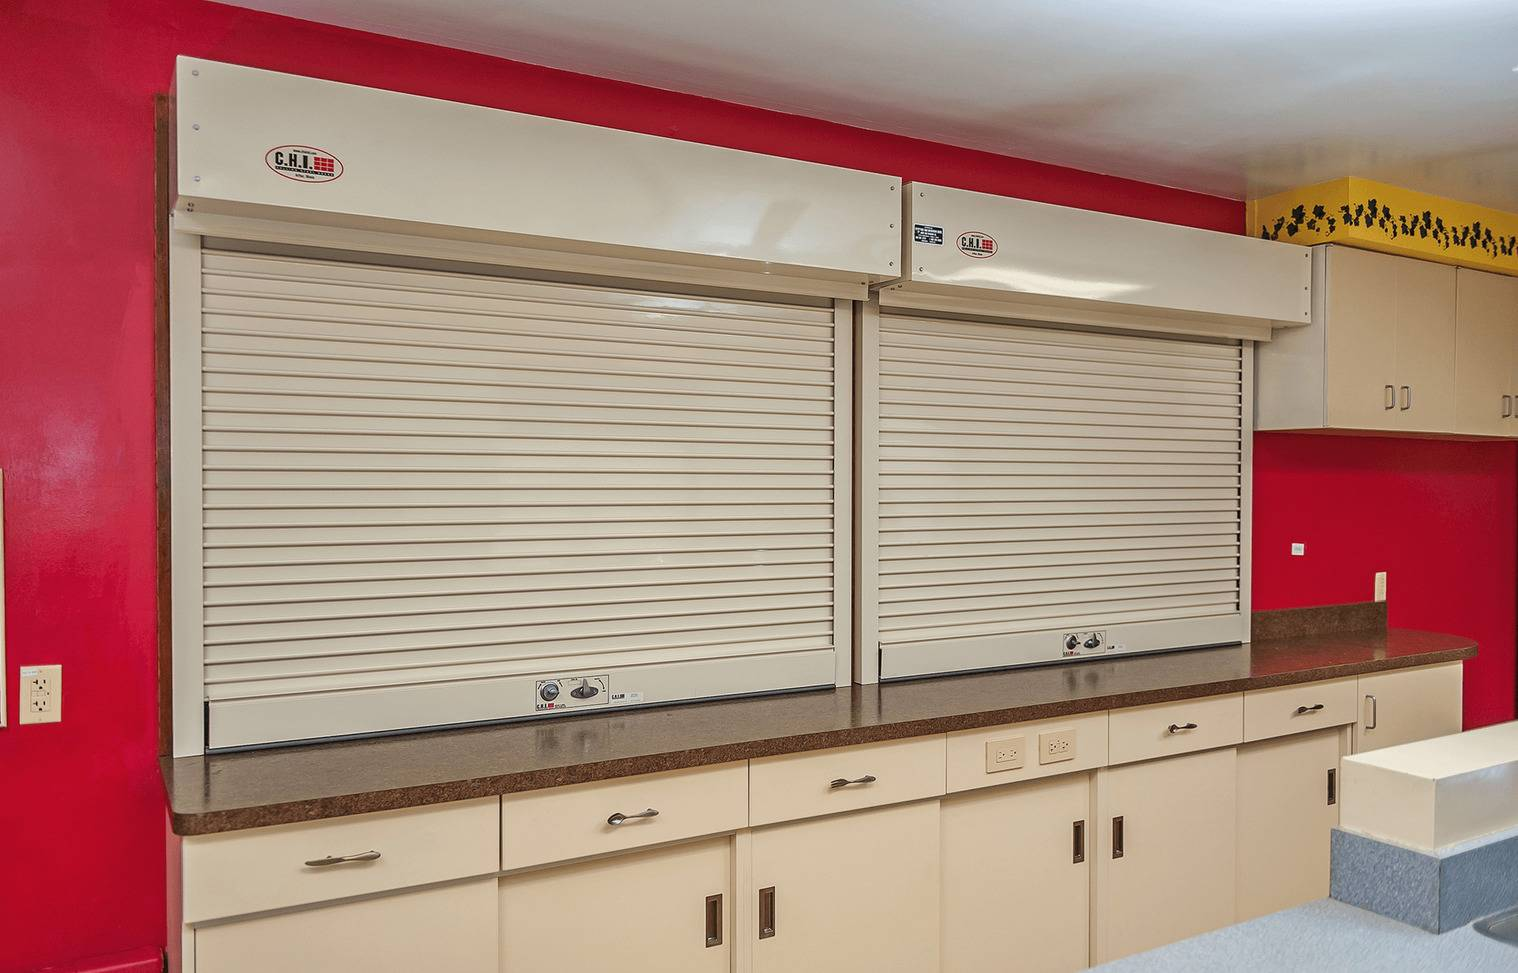 Counter Shutters - Garage Door Services, Inc. - Omaha, NE Council Bluffs, IA